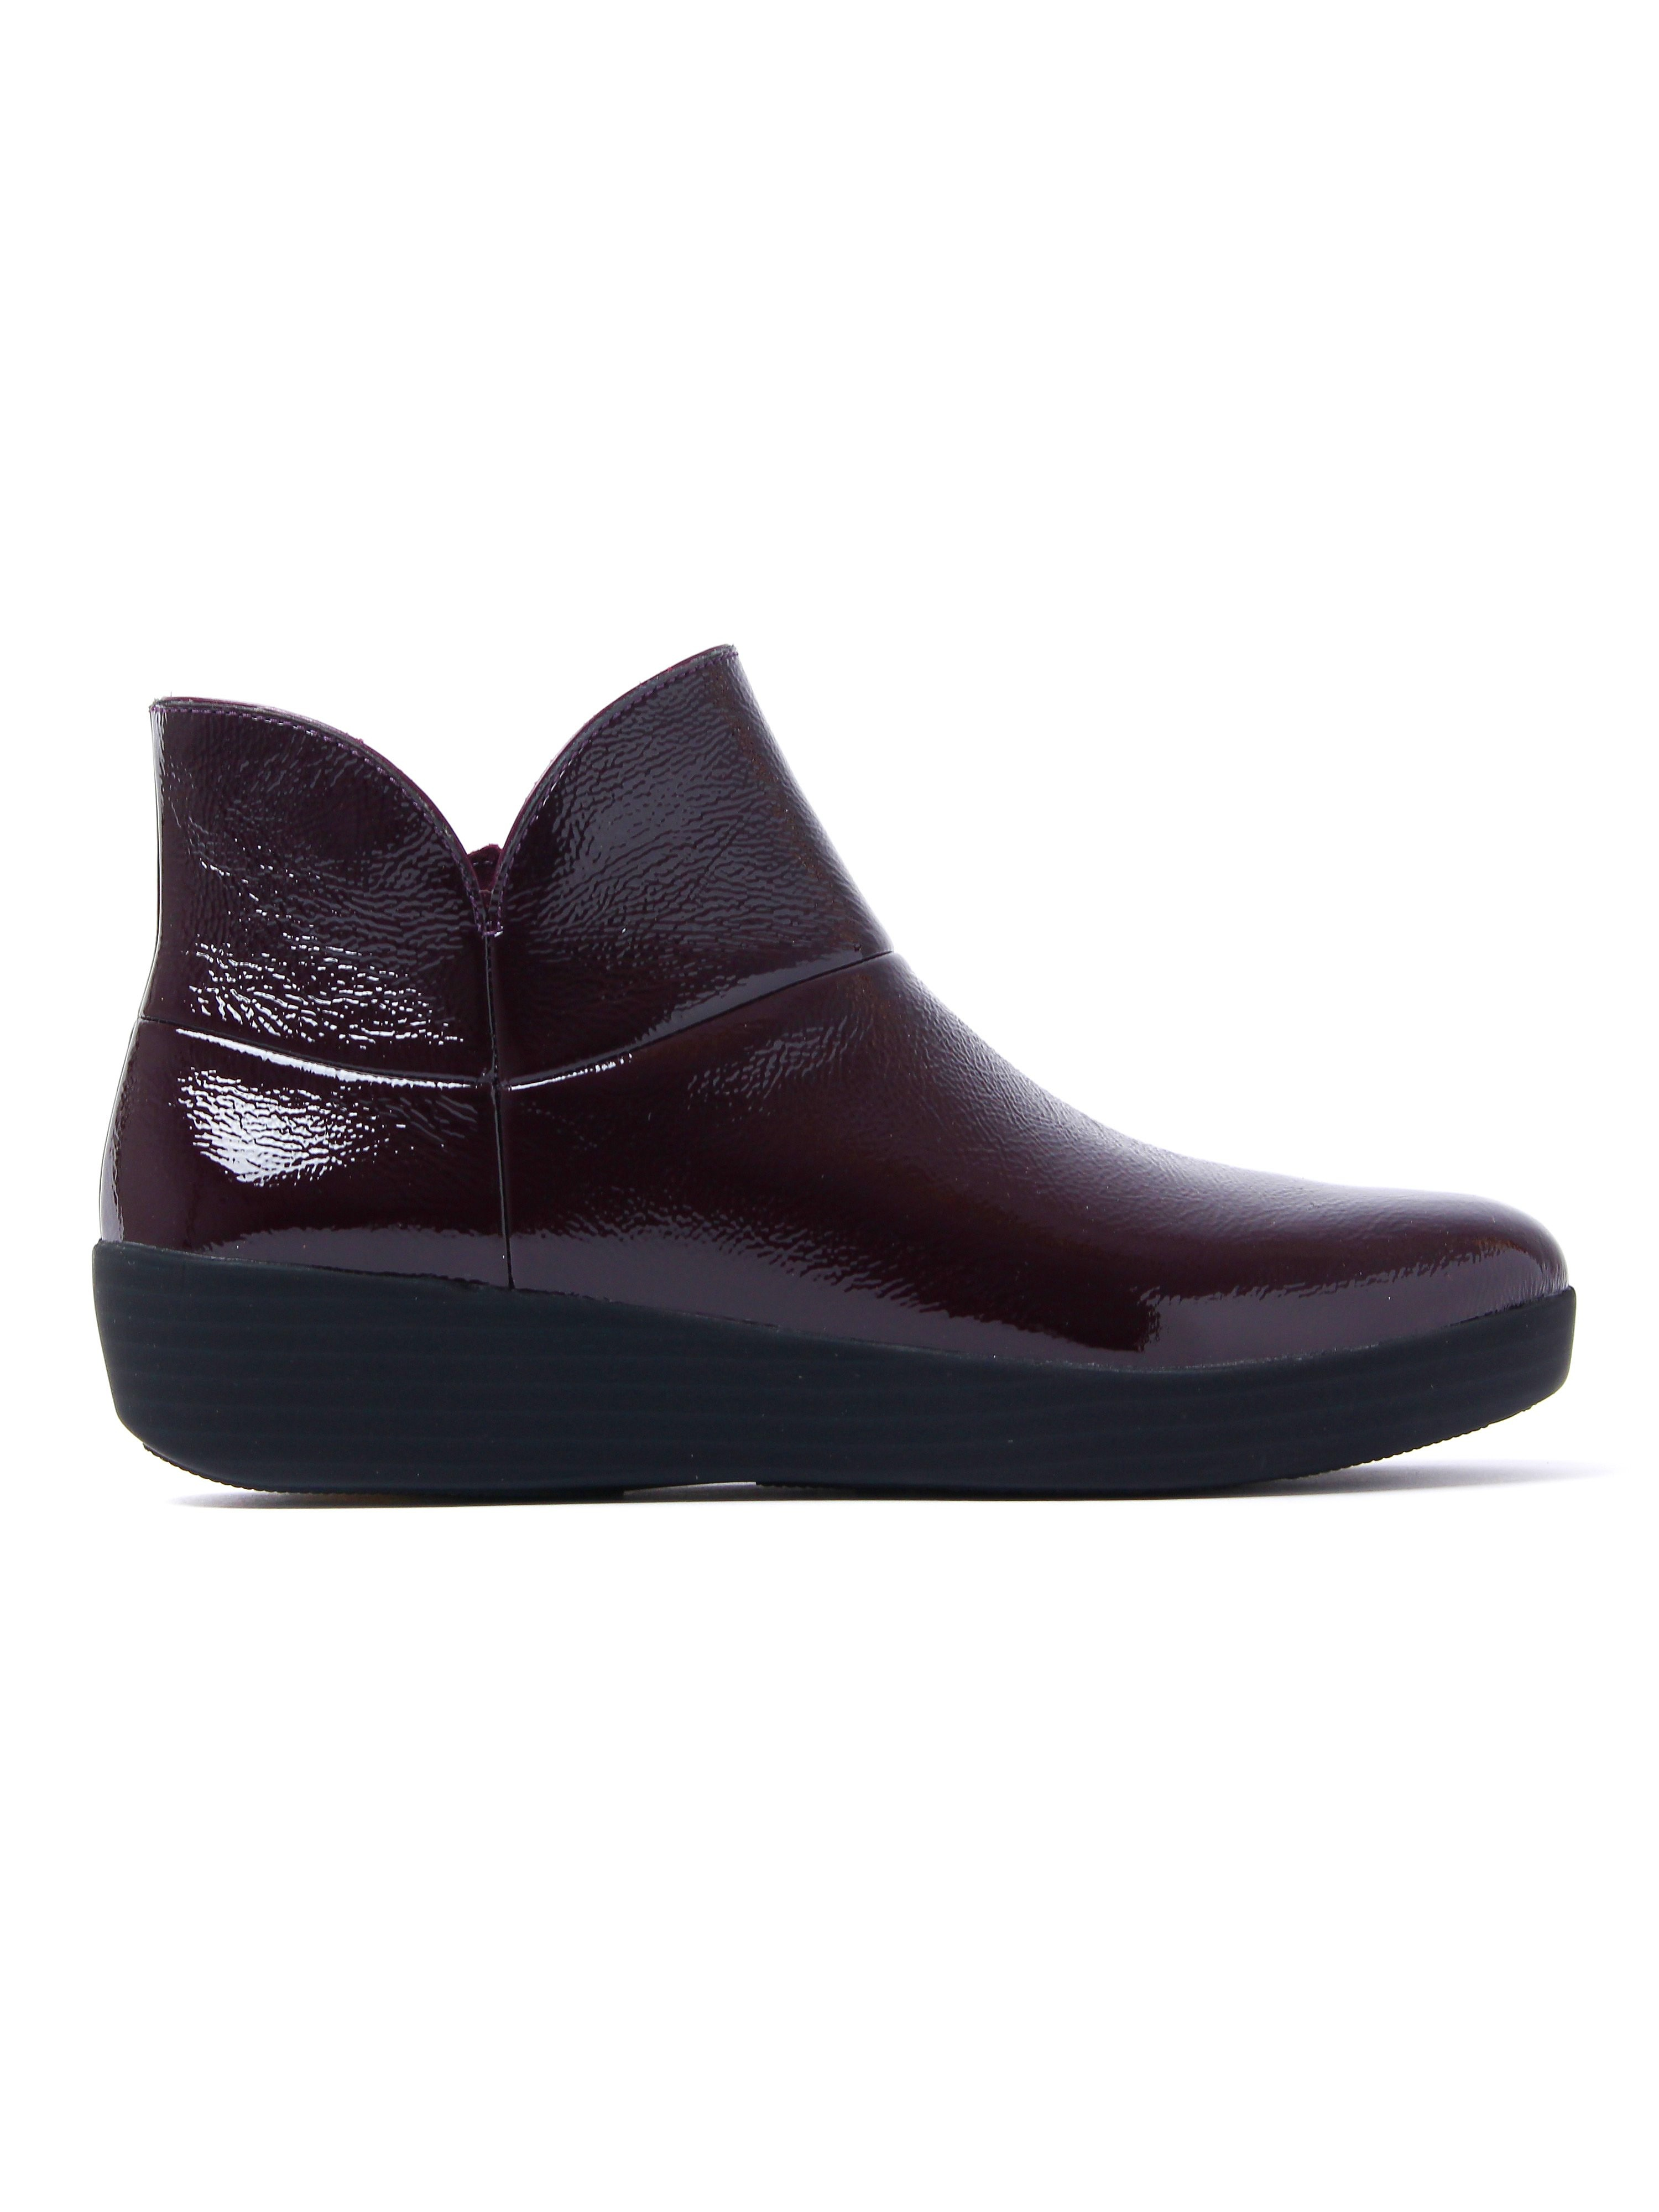 FitFlop Women's Supermod II Ankle Boots - Plum Patent